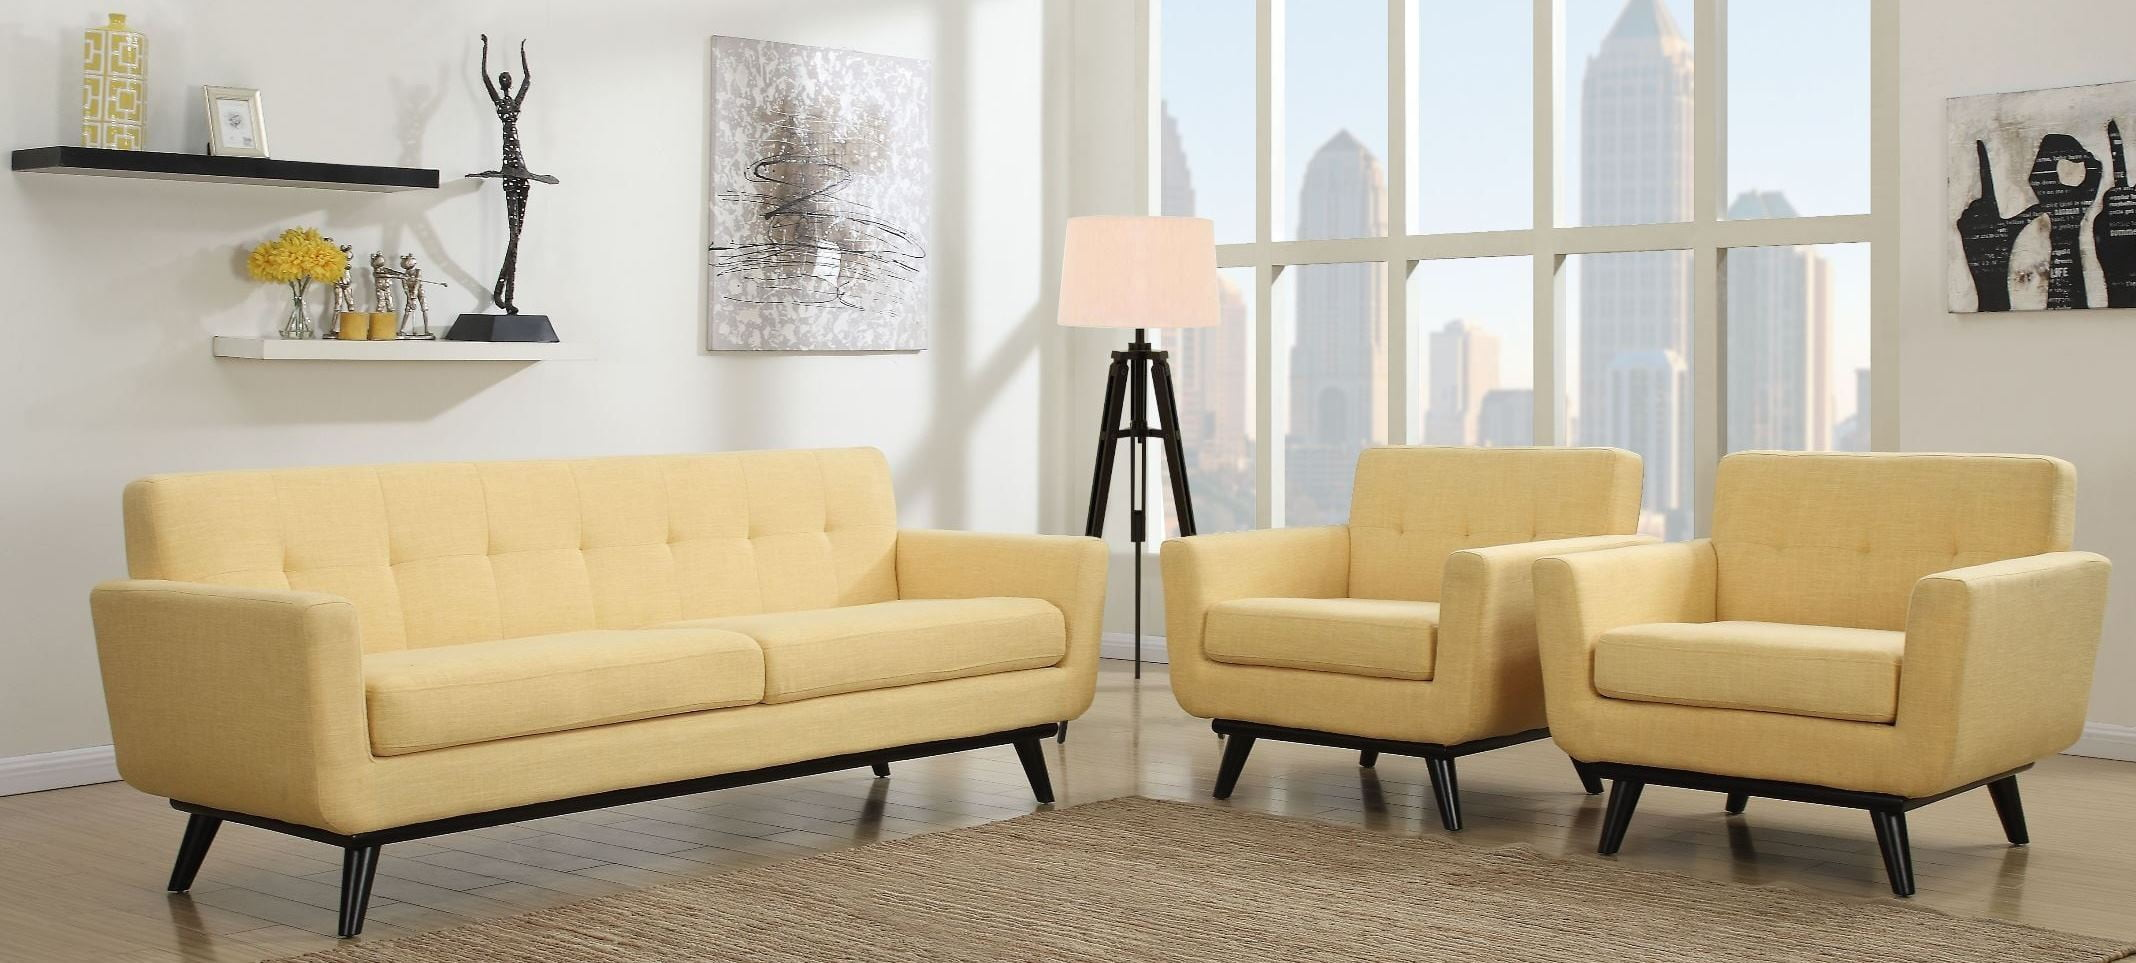 Yellow Living Room Chair James Mustard Yellow Linen Living Room Set From Tov A55